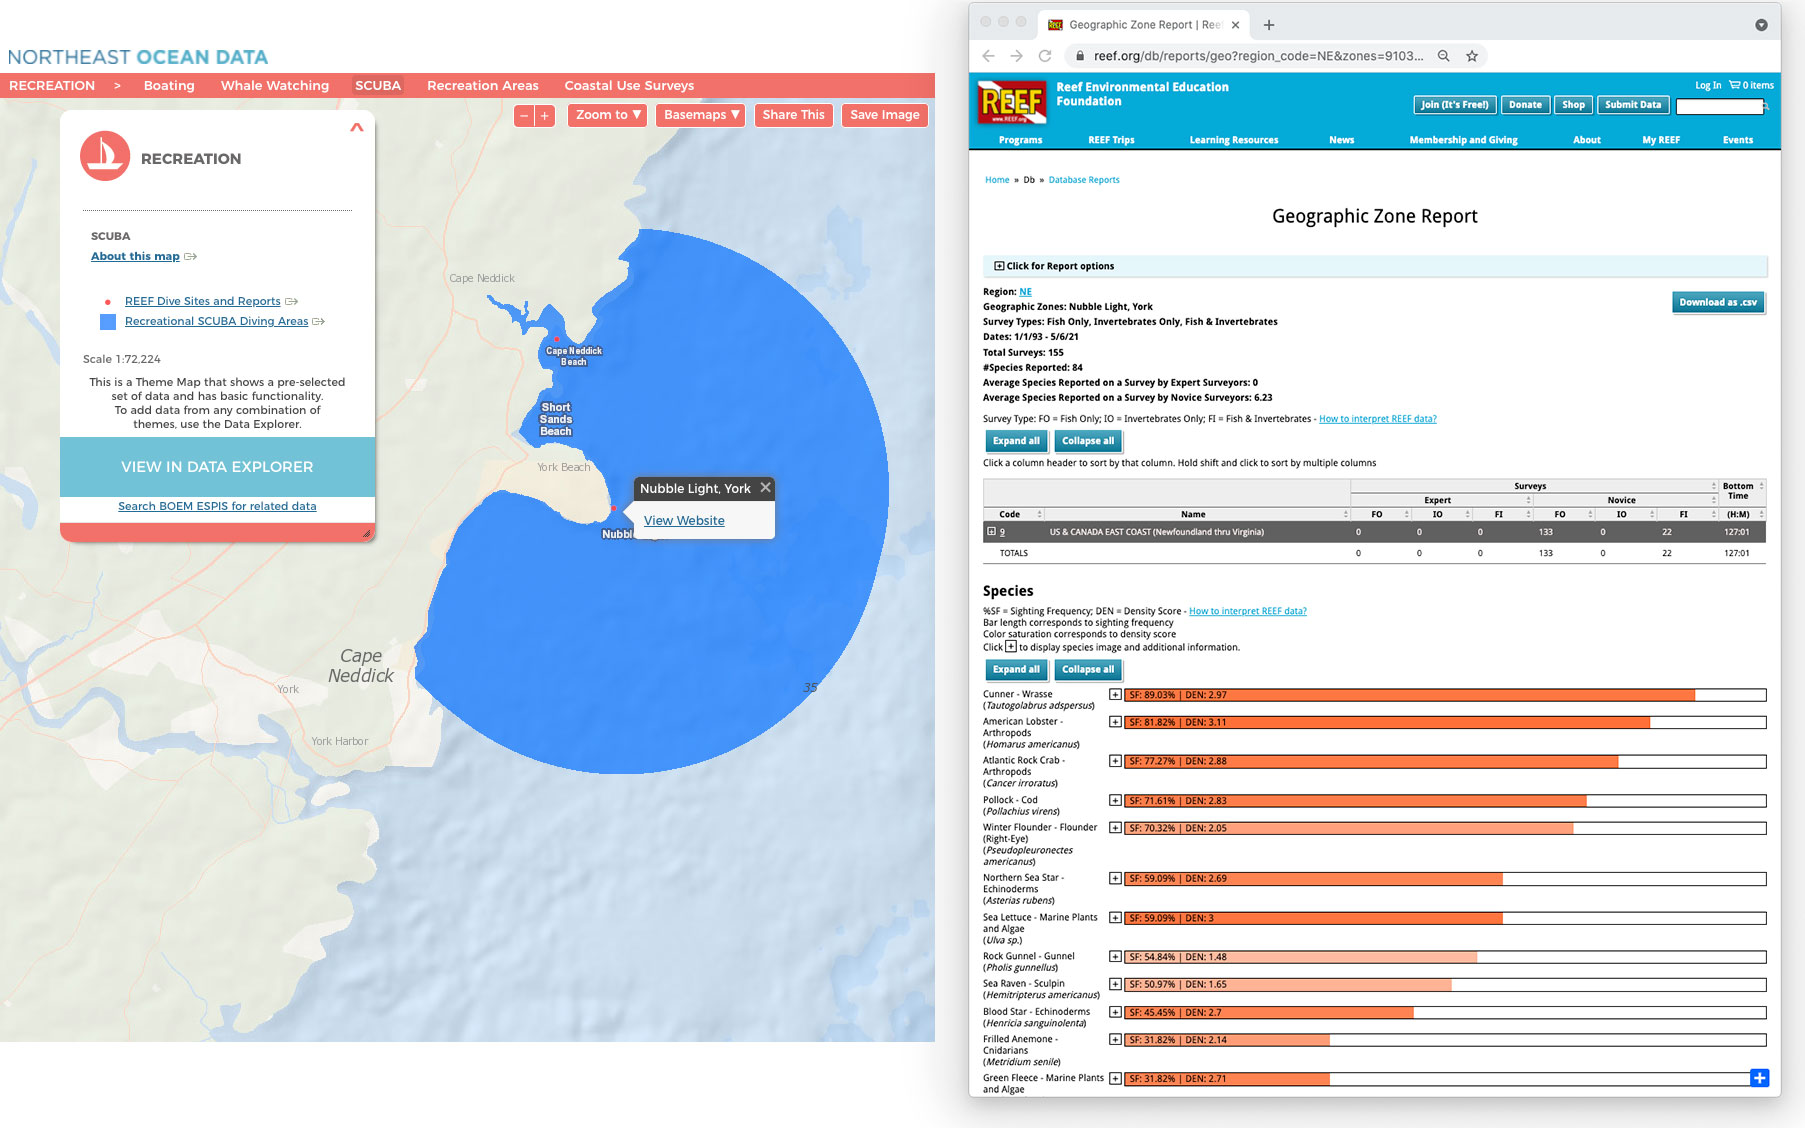 Recreation theme map showing Recreational SCUBA Diving Areas and REEF Dive Sites and Reports. By clicking on a REEF Dive Site, users can click a link to view a summary of volunteer surveys conducted at that location.